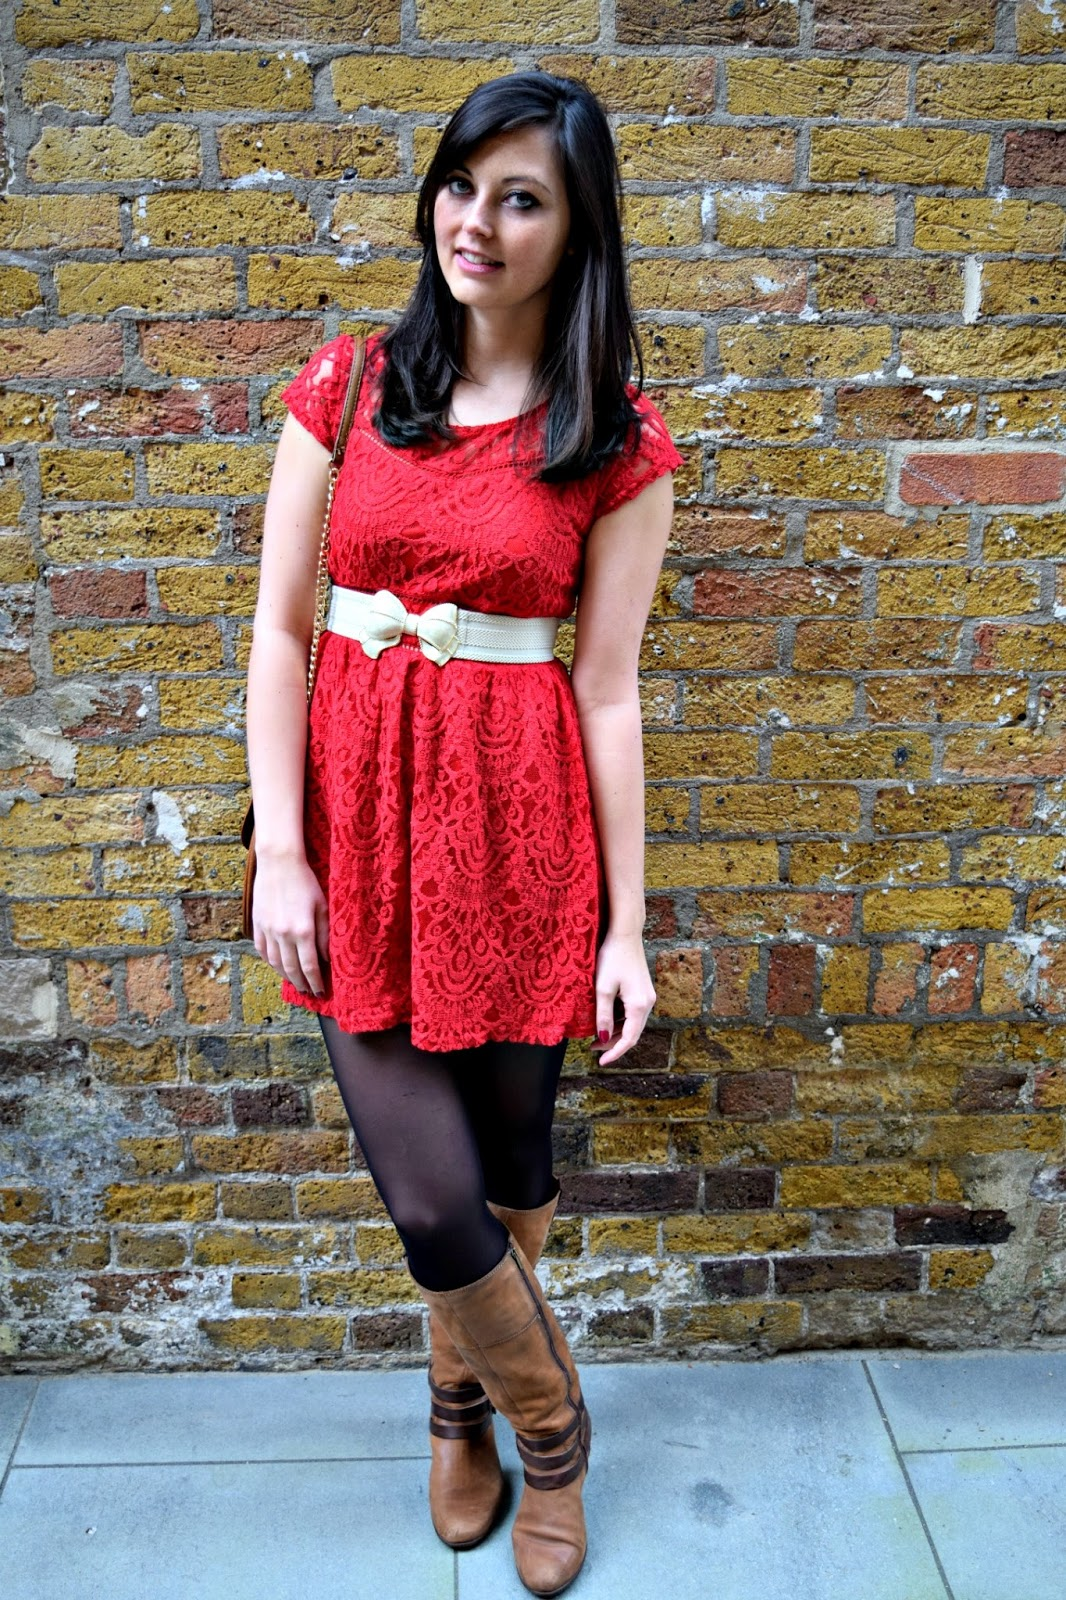 fashion outfit post including a red dress from H&M